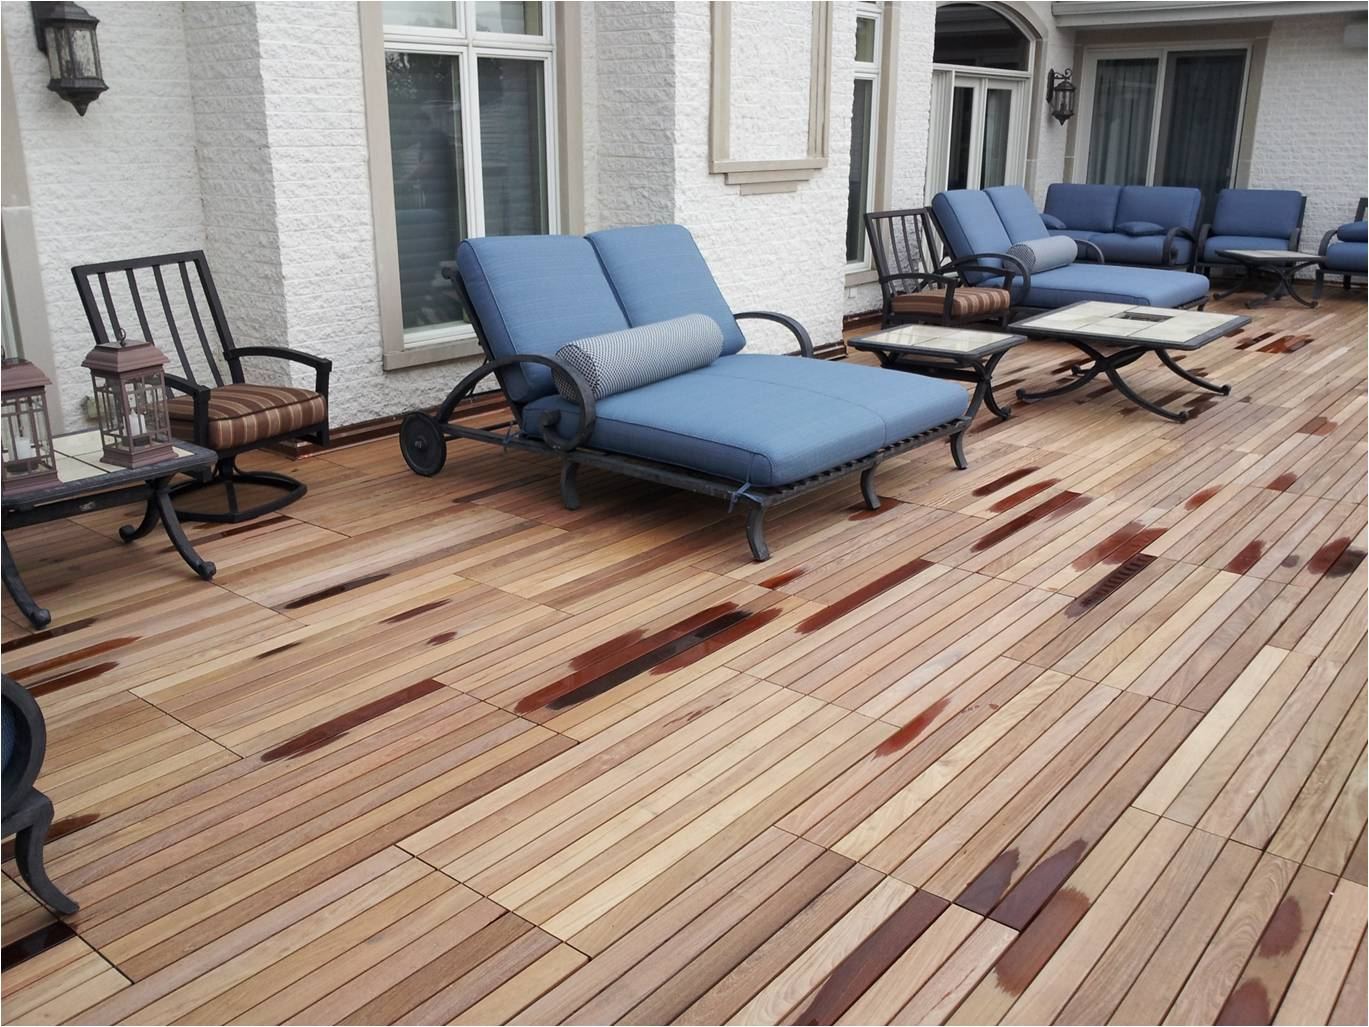 Image of: Bison Deck Supports Concrete